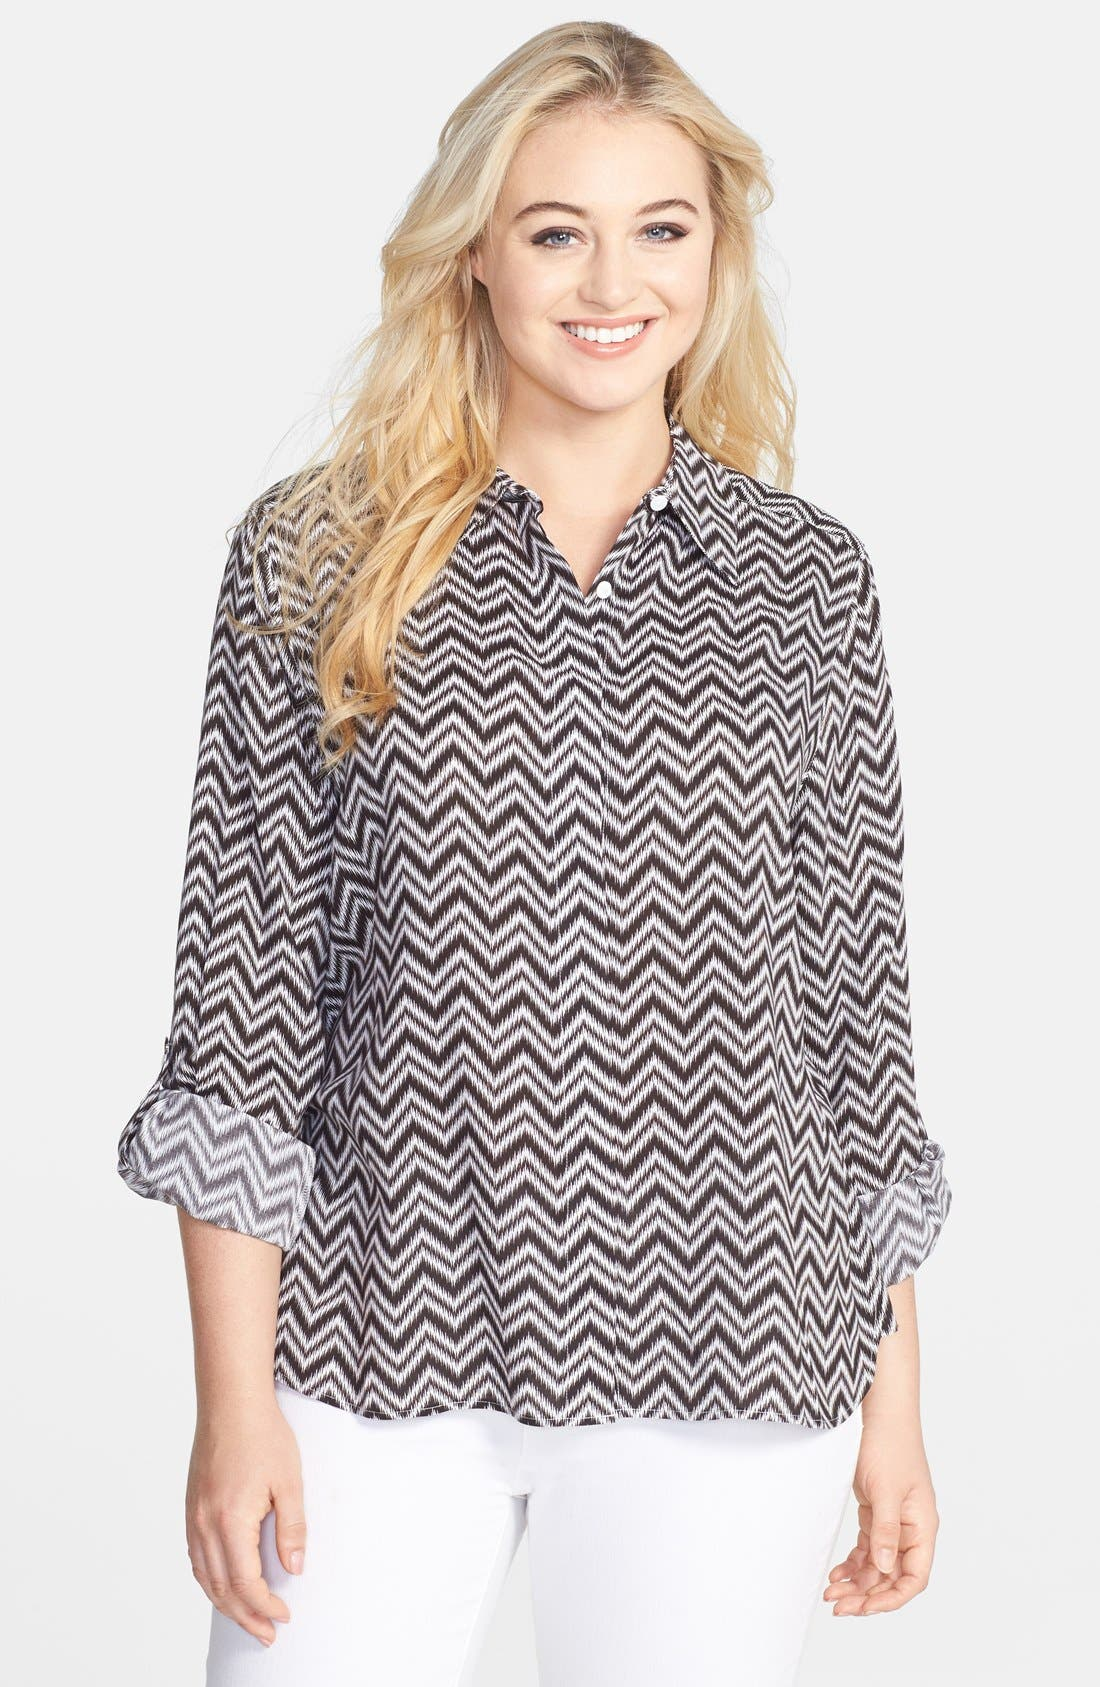 Alternate Image 1 Selected - Foxcroft Chevron Stripe Shaped Shirt (Plus Size)